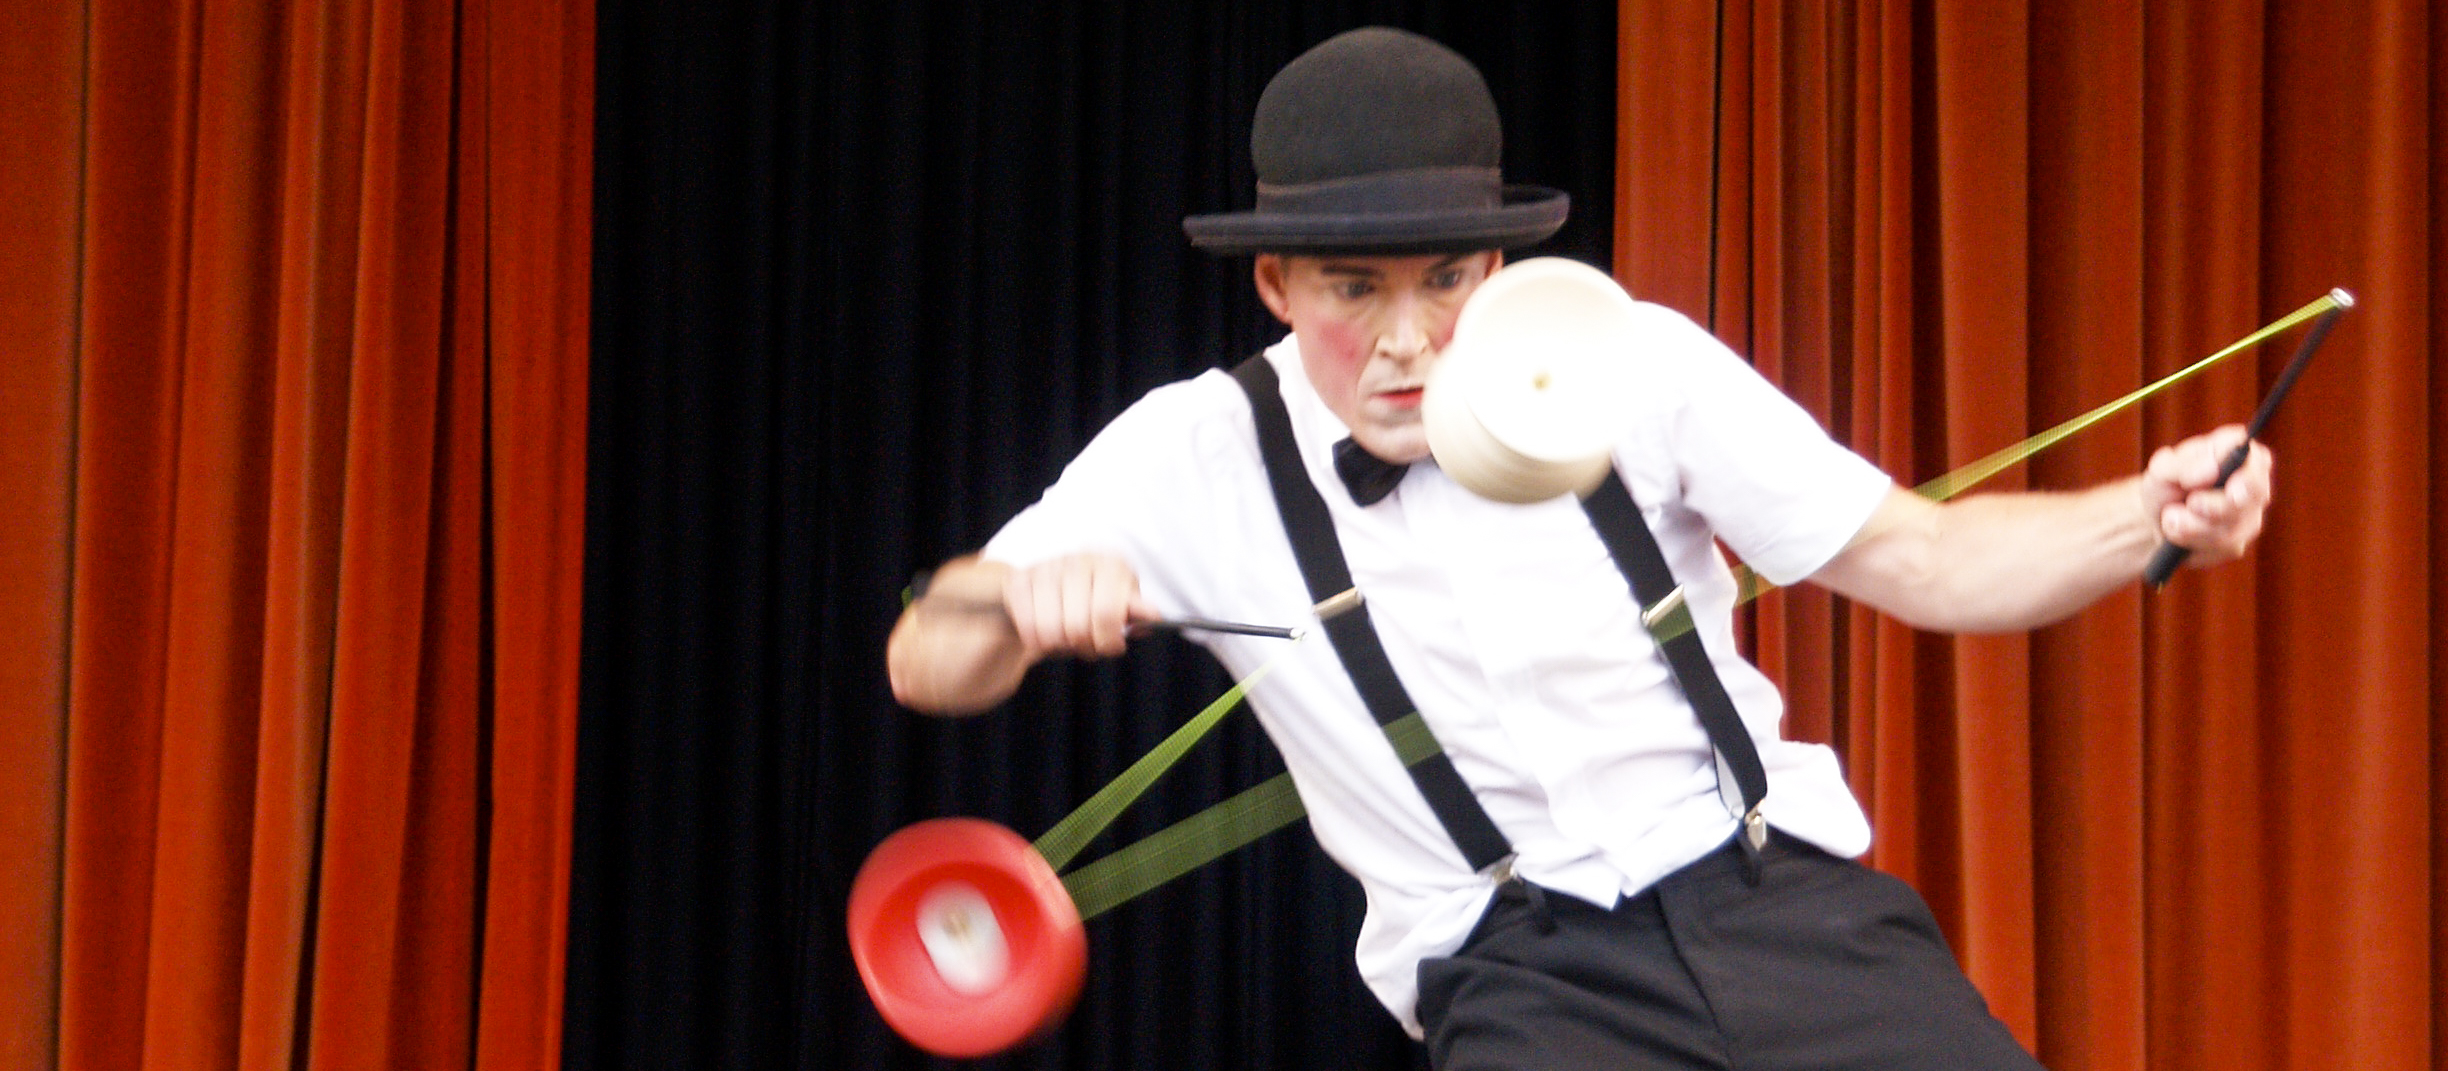 Juggling and mime show 5